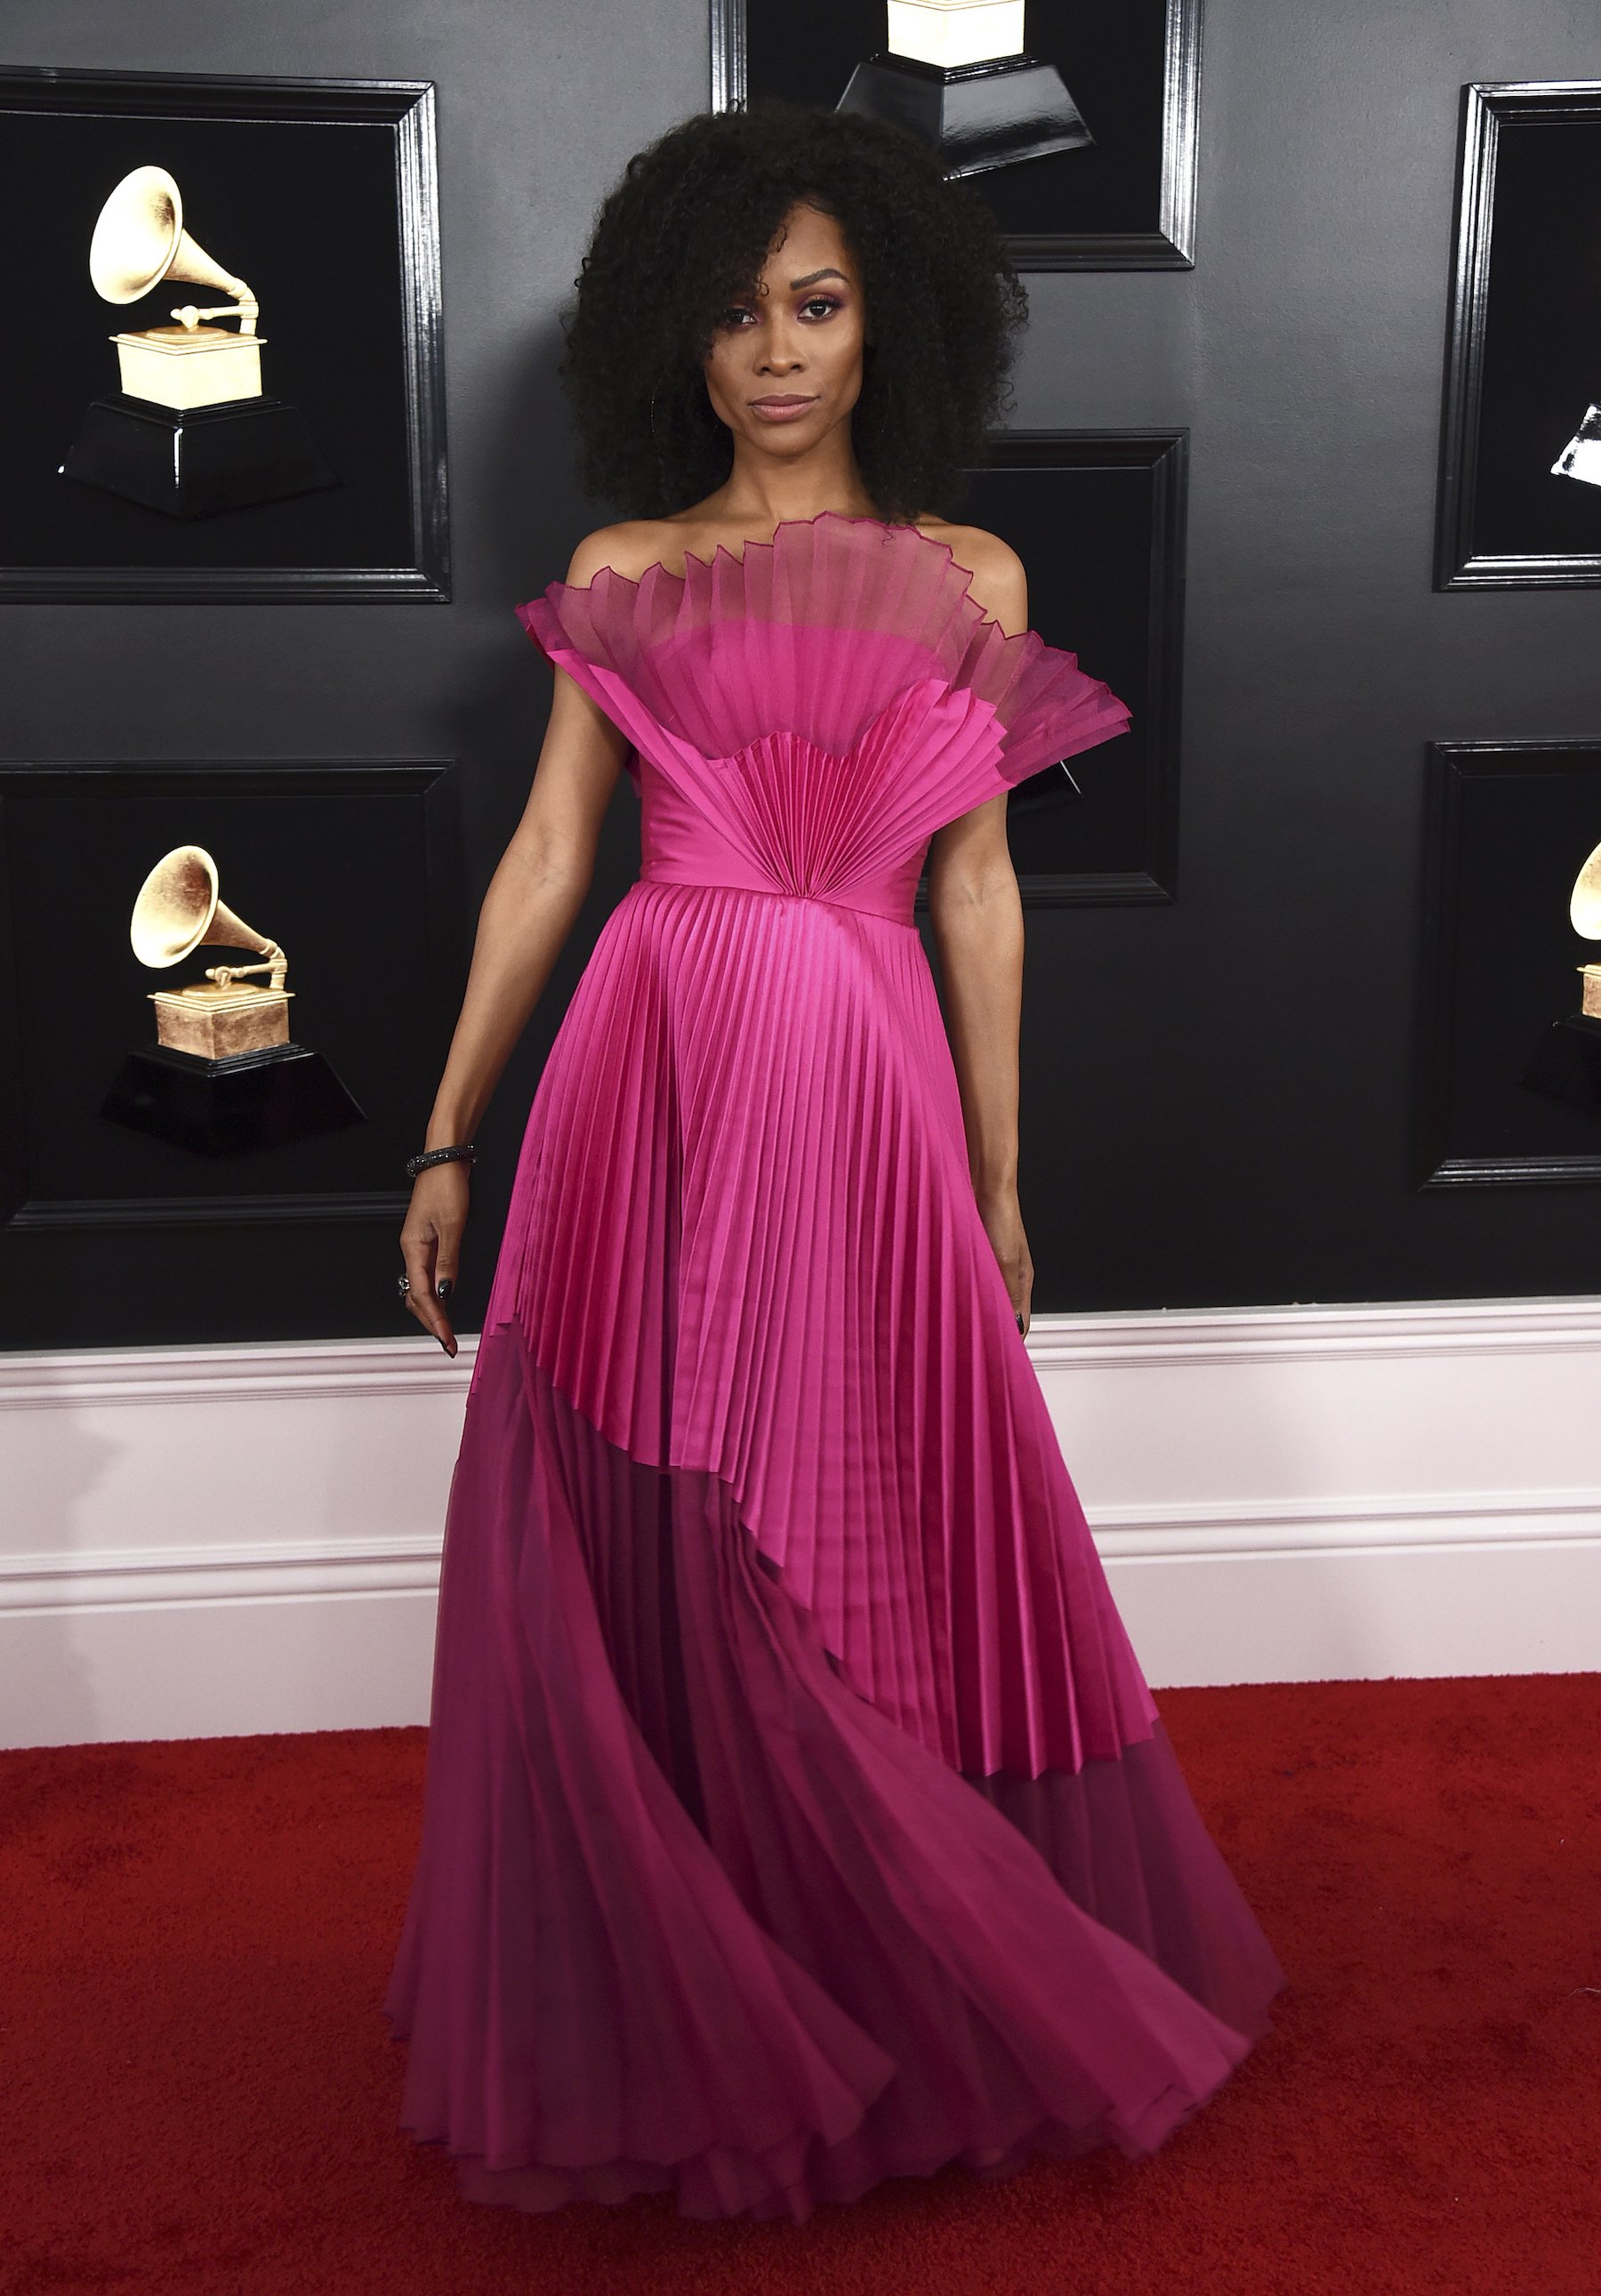 <div class='meta'><div class='origin-logo' data-origin='AP'></div><span class='caption-text' data-credit='Jordan Strauss/Invision/AP'>Zuri Hall arrives at the 61st annual Grammy Awards at the Staples Center on Sunday, Feb. 10, 2019, in Los Angeles.</span></div>